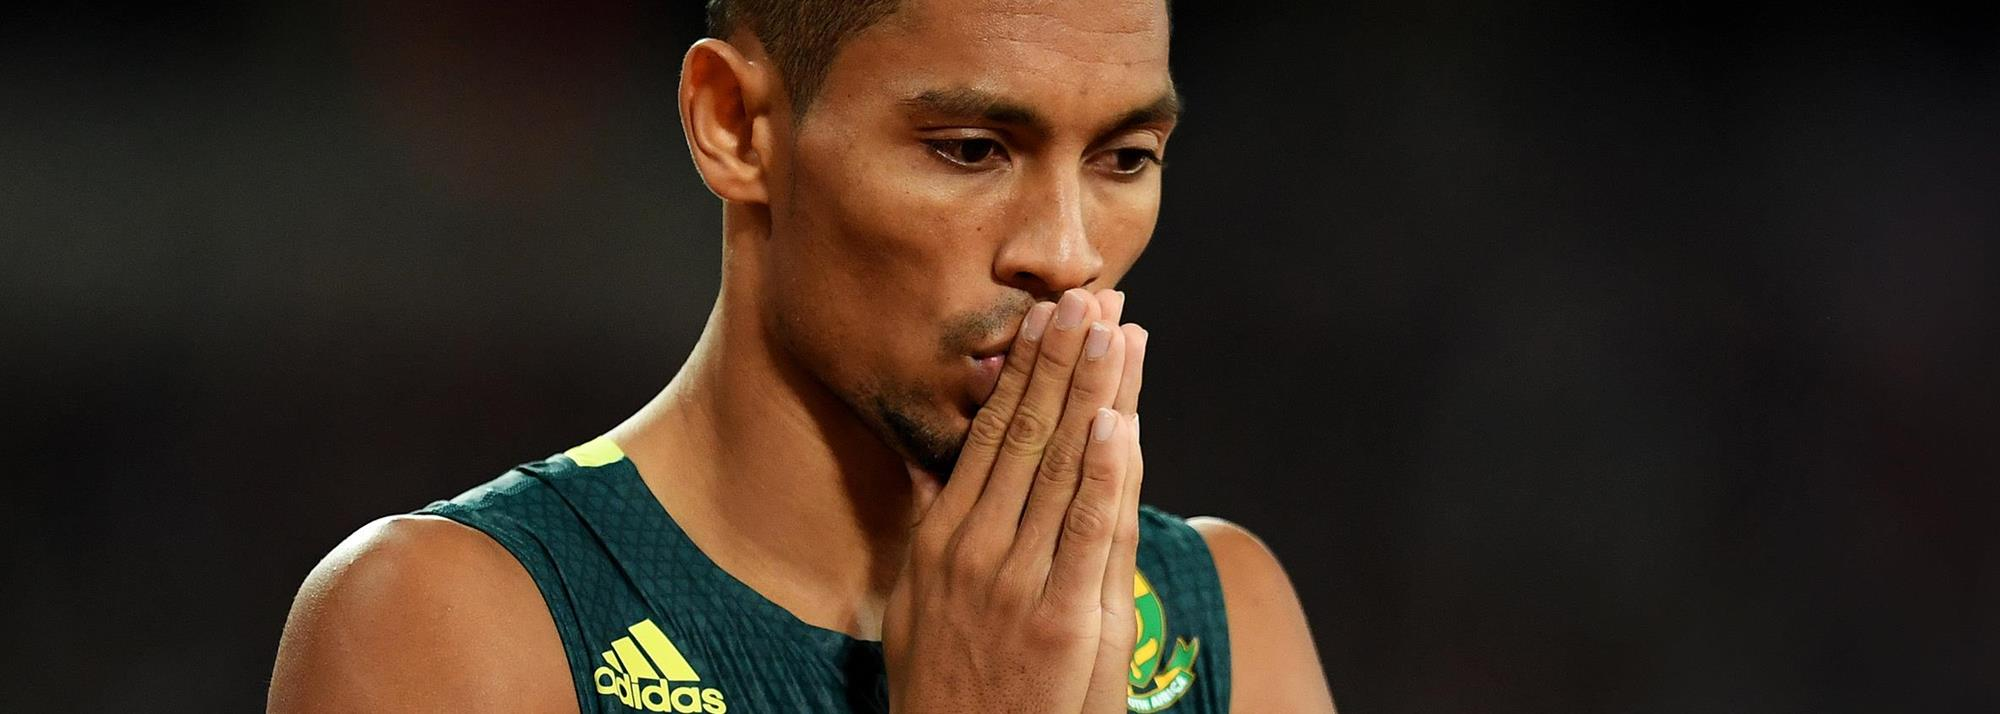 After two years on the sidelines, Van Niekerk ready to accept comeback challenge